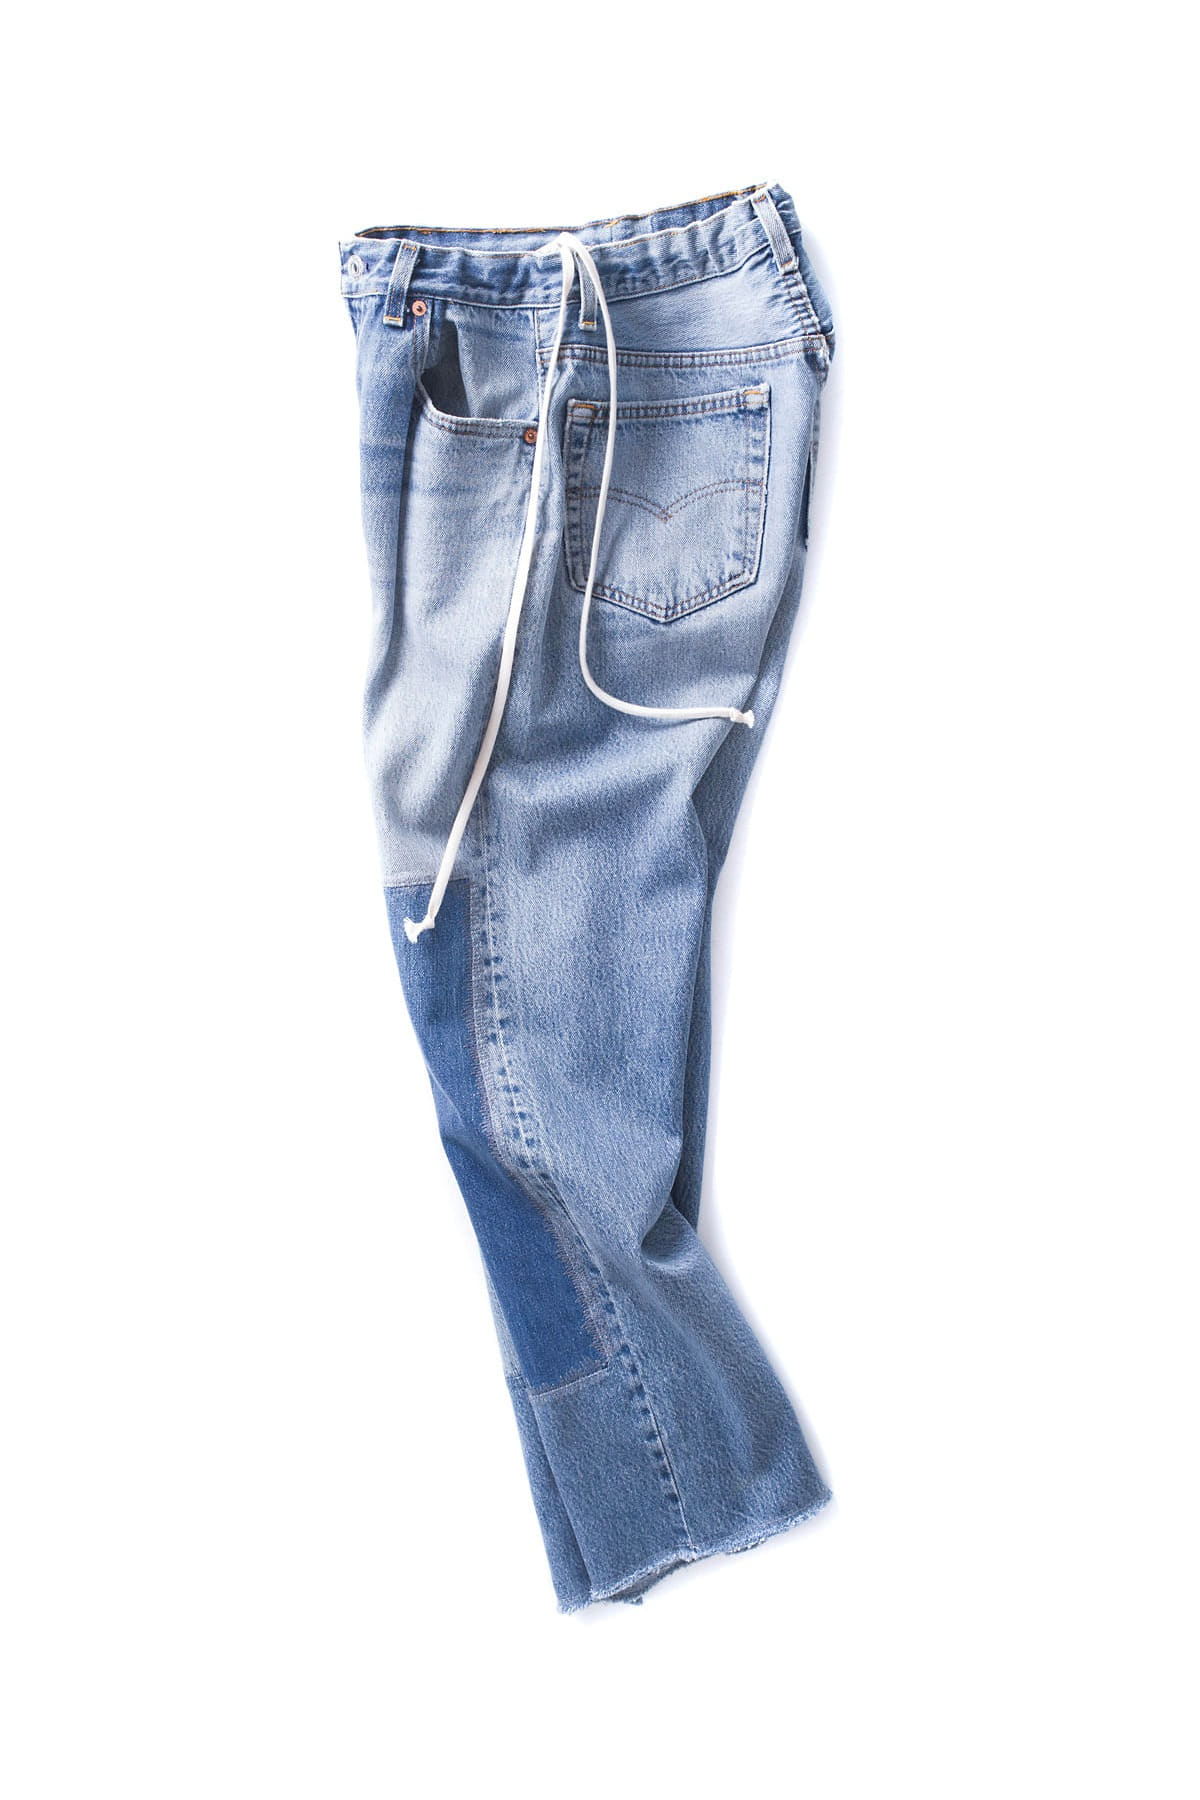 HEXICO : 1 Pleat Denim (L.Indigo)